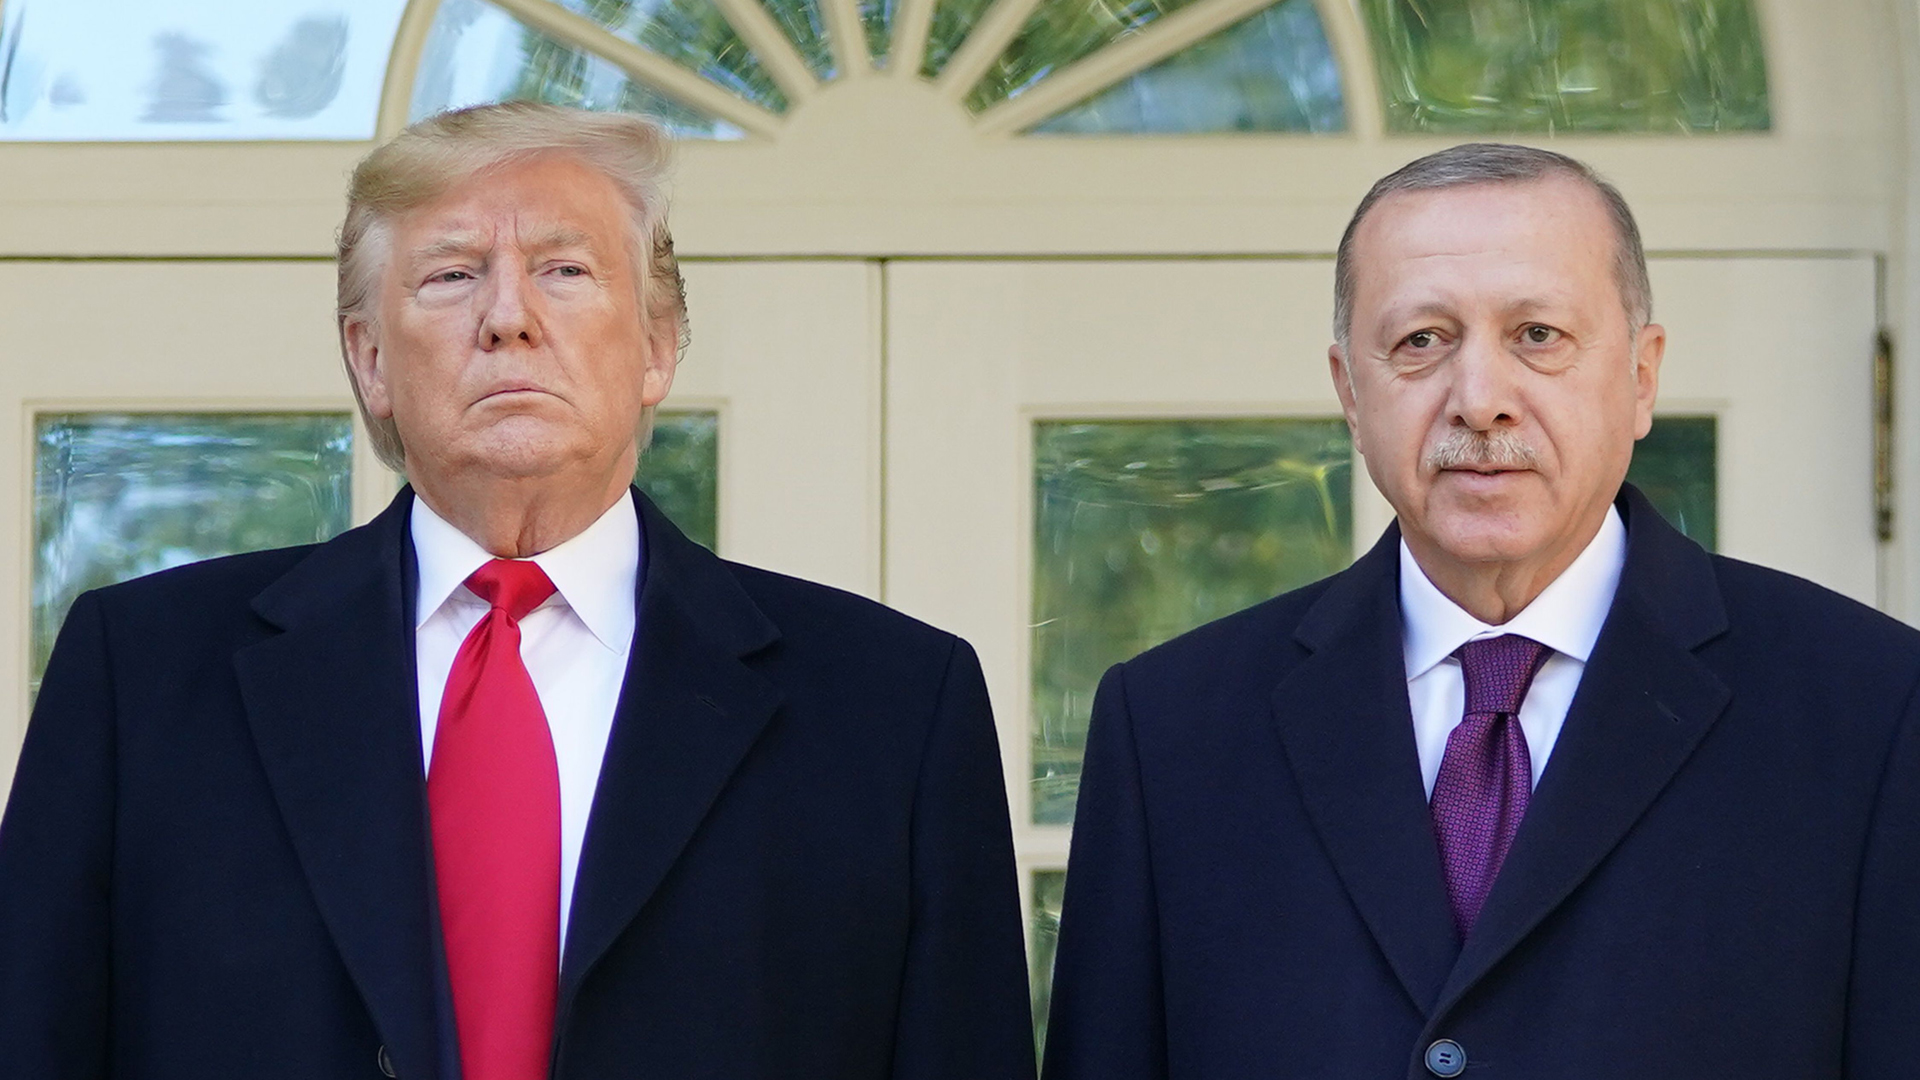 President Trump greets Turkey's President Recep Tayyip Erdogan upon arrival outside the White House on Nov. 13, 2019. (Credit: MANDEL NGAN/AFP via Getty Images)